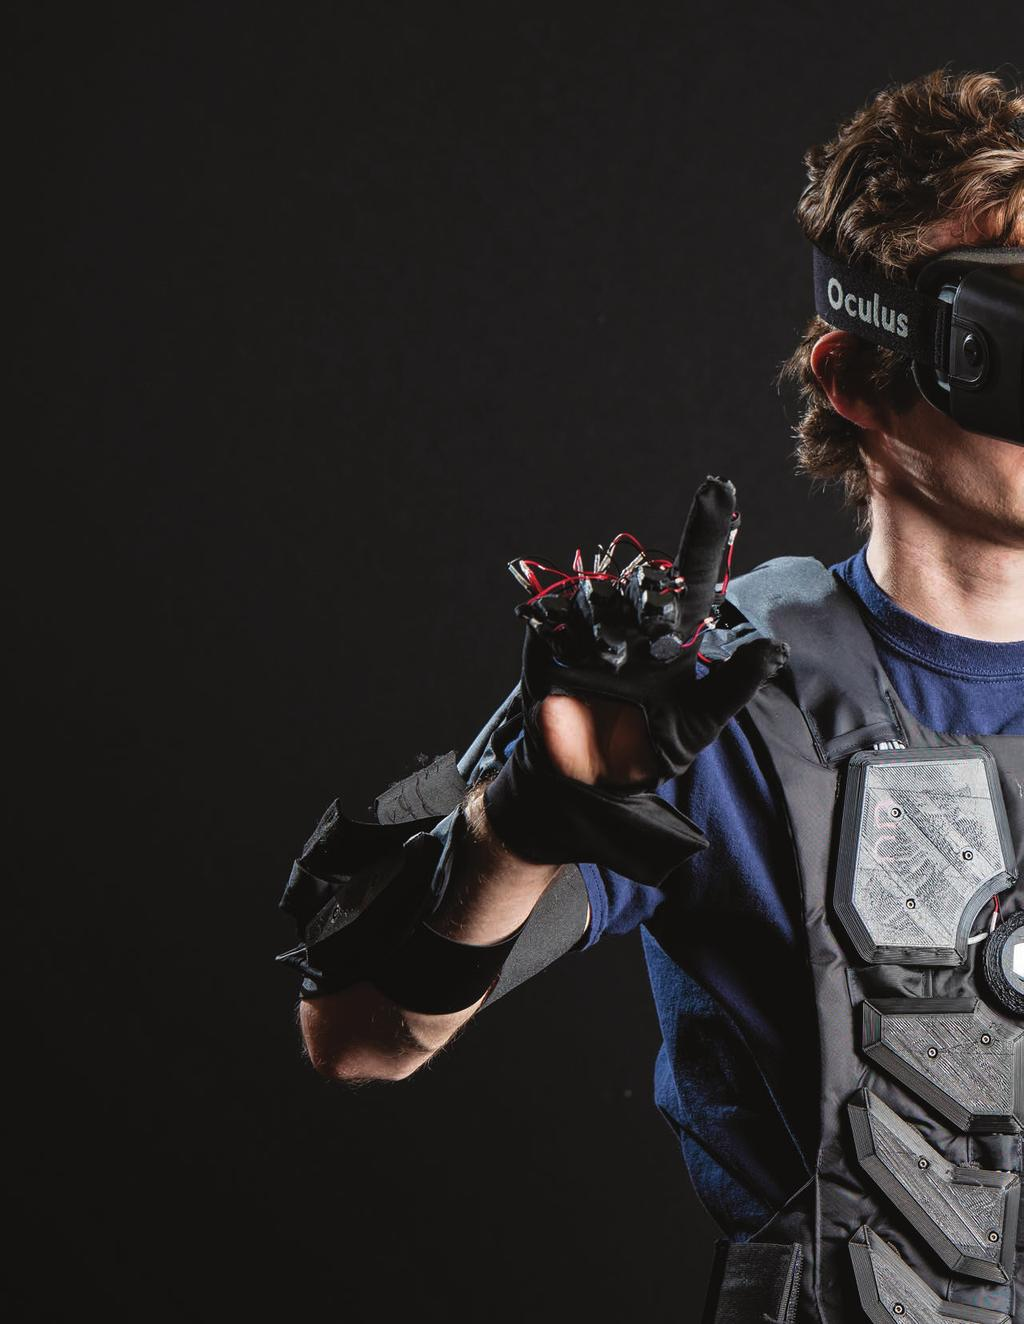 In Review STUDENT ENTREPRENEURS Vision of Virtual Reality BODY BY DESIGN: Lucian Copeland 16, an electrical and computer engineering major from Northfield, Massachusetts, models a prototype of a